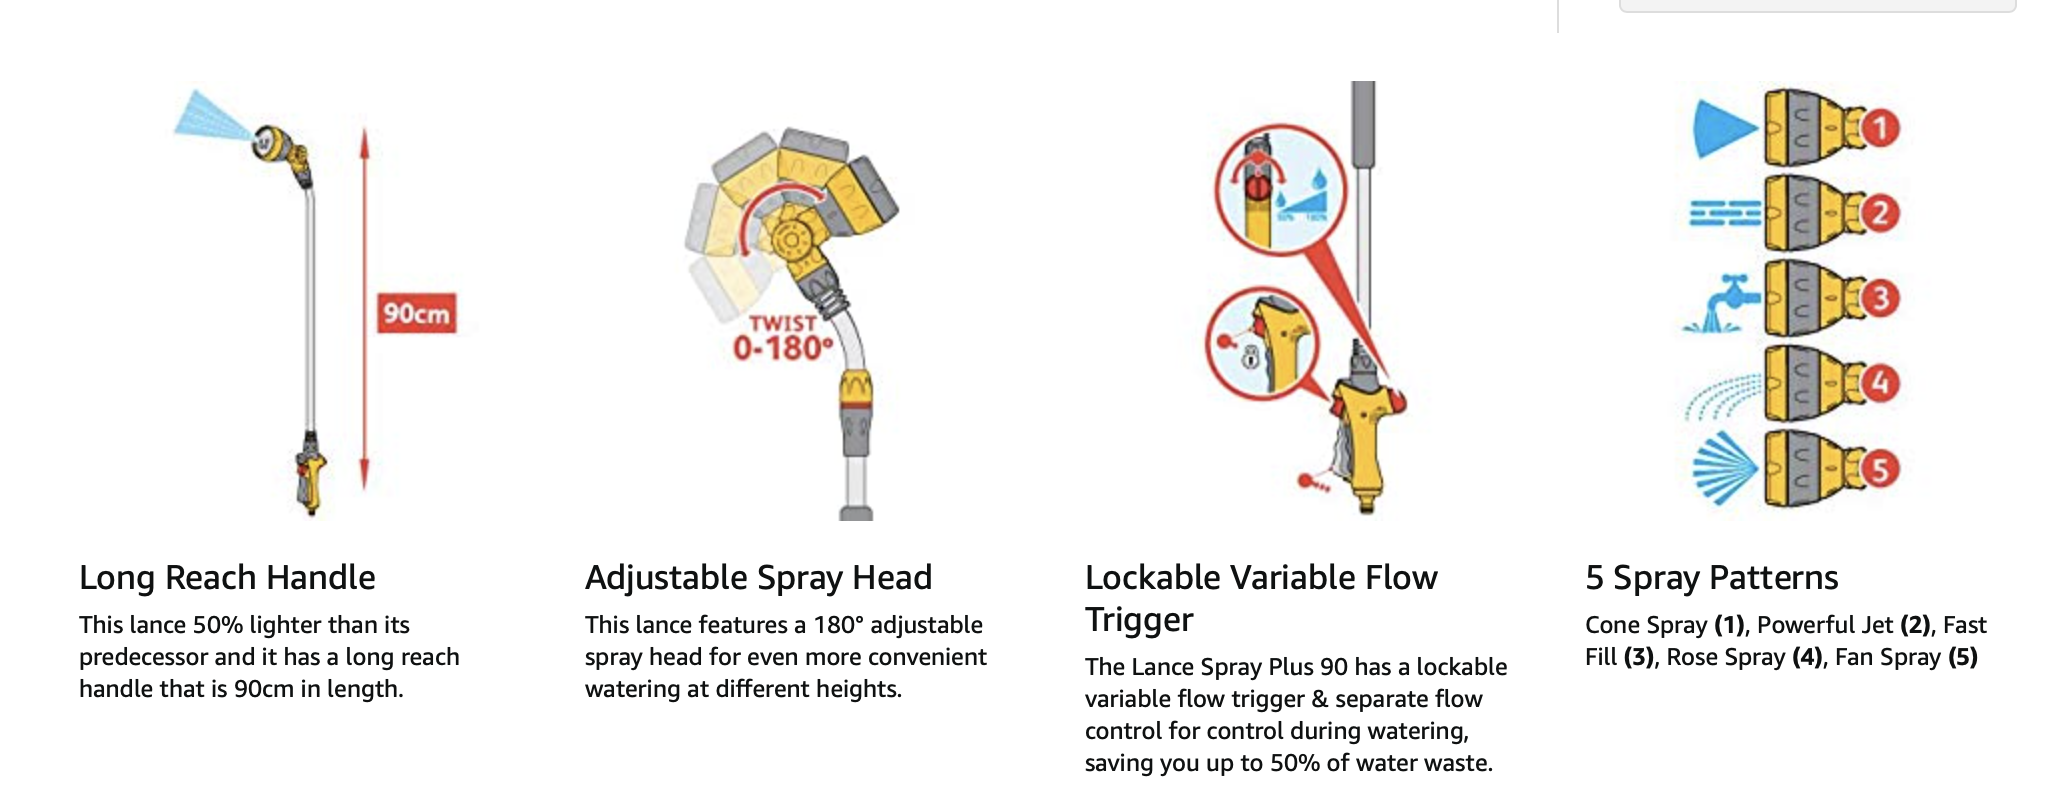 hozelock-2697-lance-spray-plus-90-2-fixthebog.uk.png